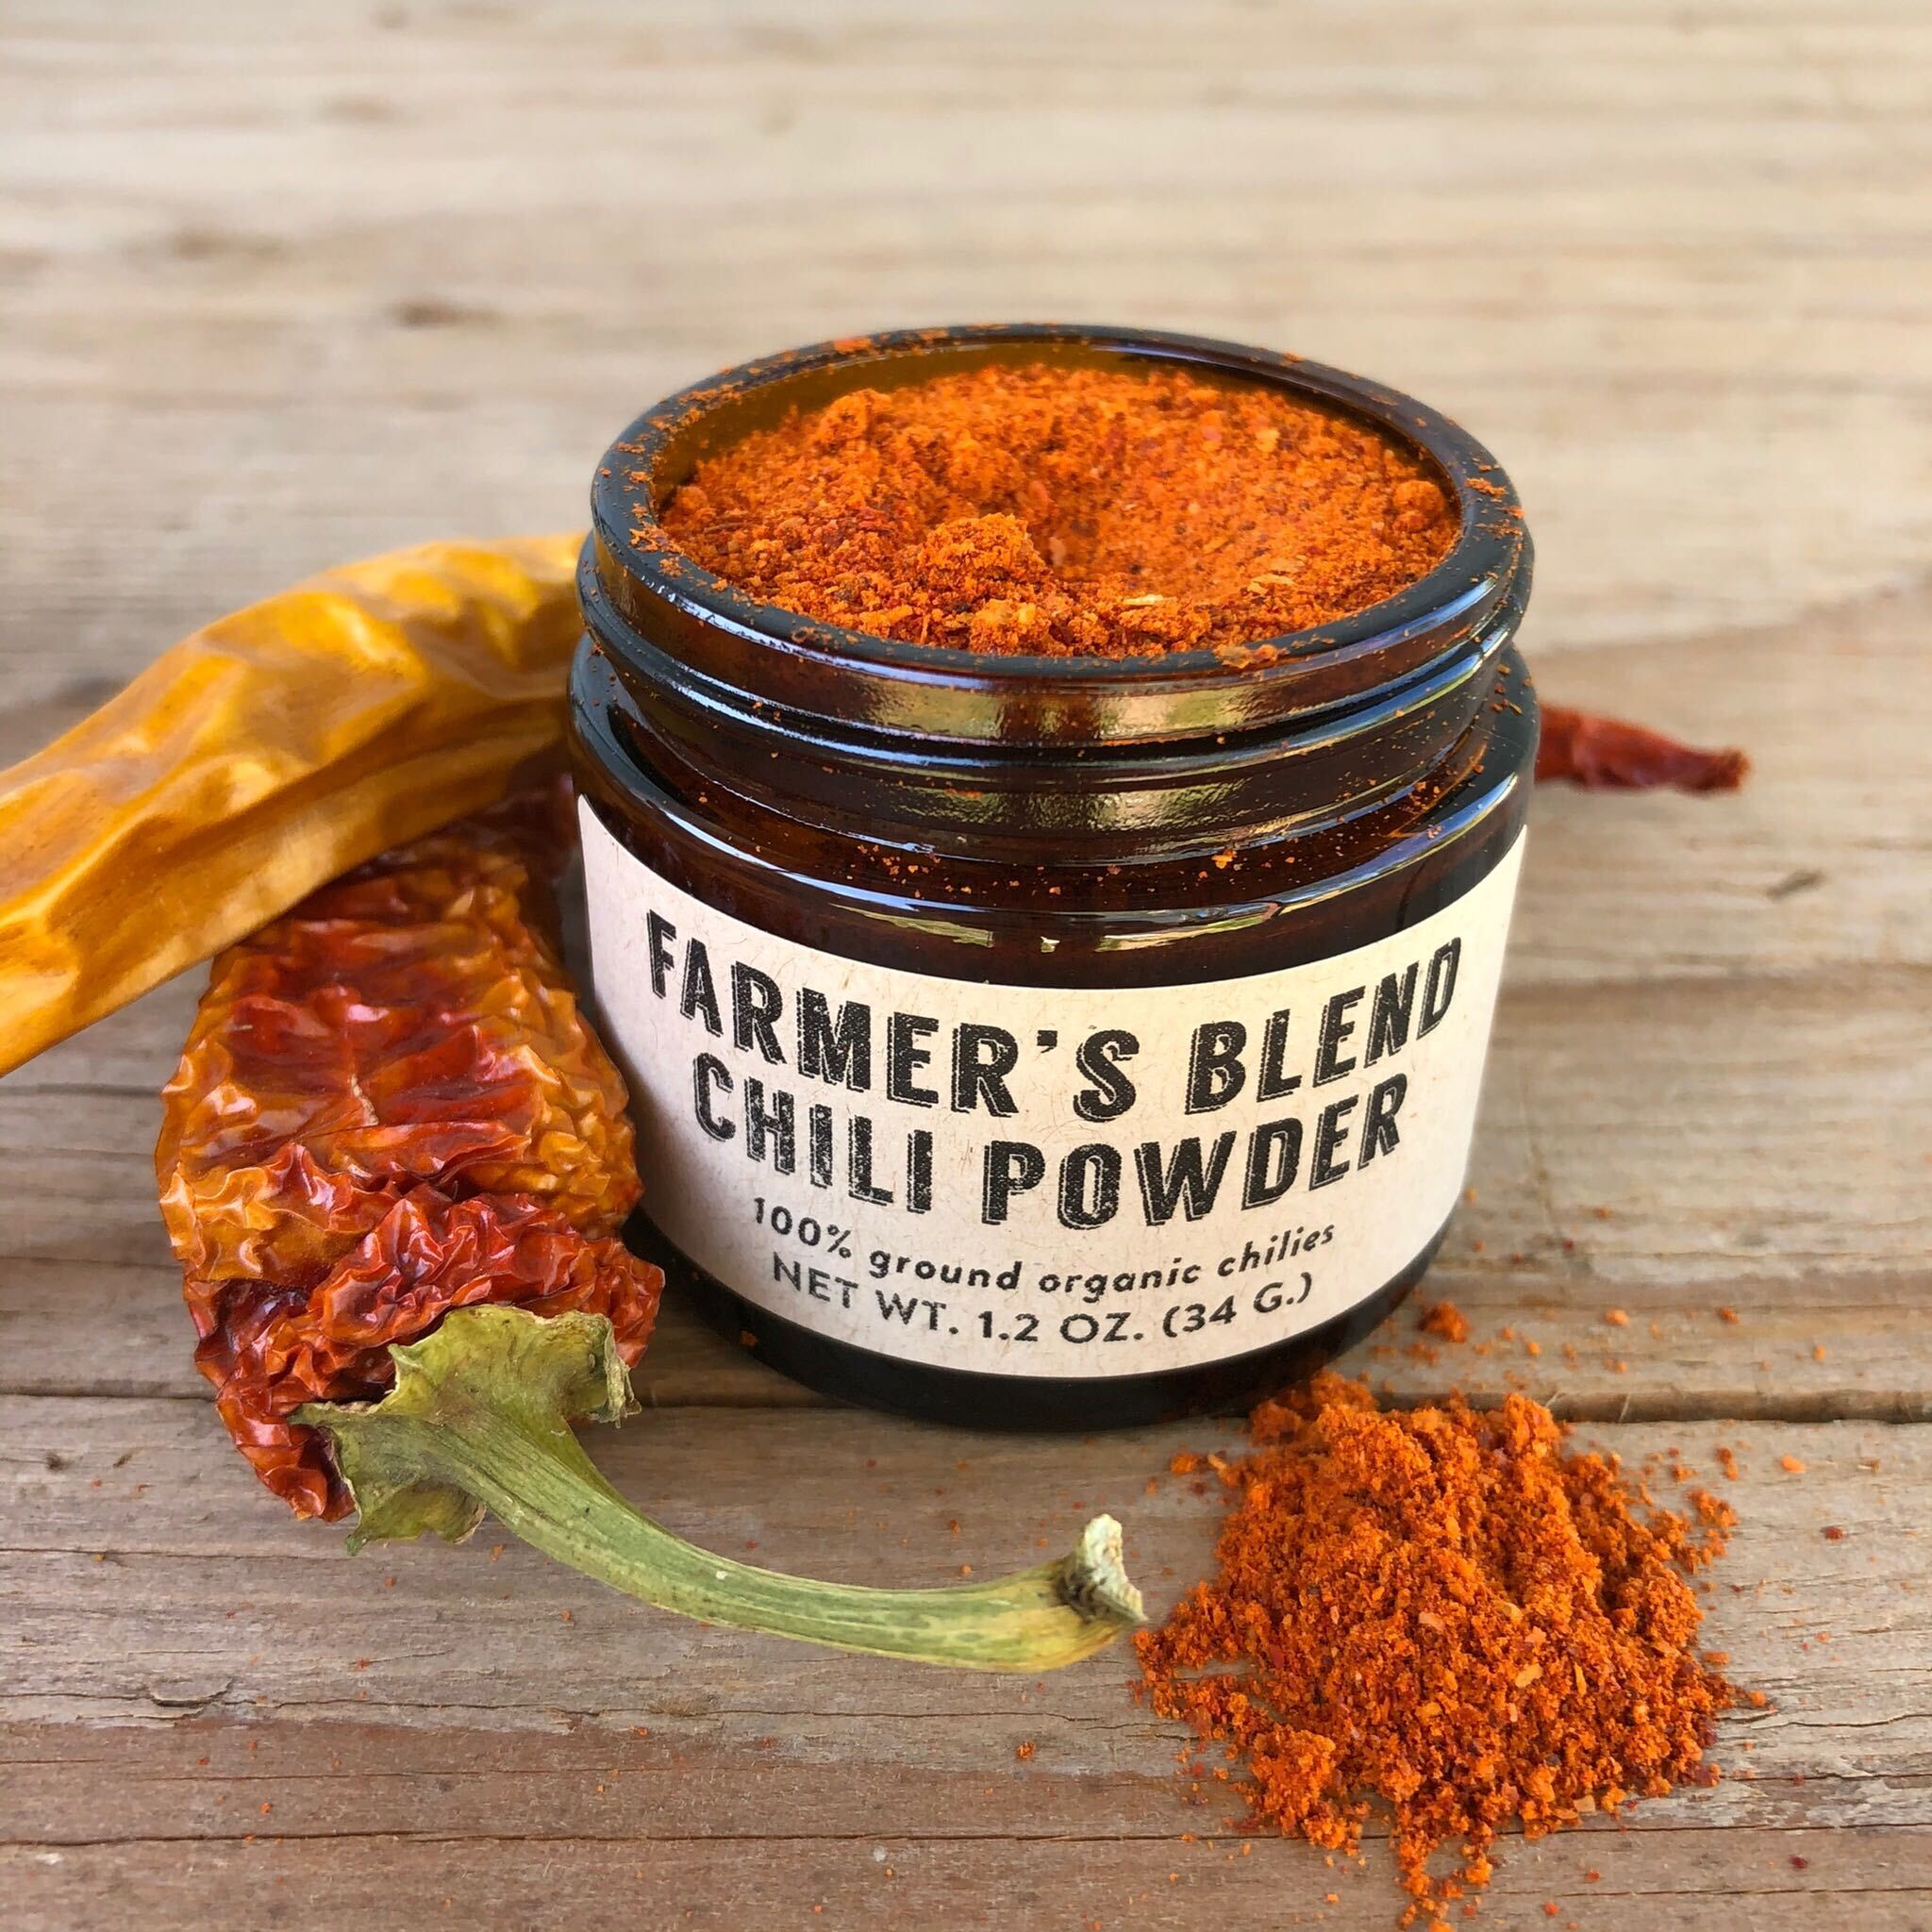 Farmer's Blend Chili Powder